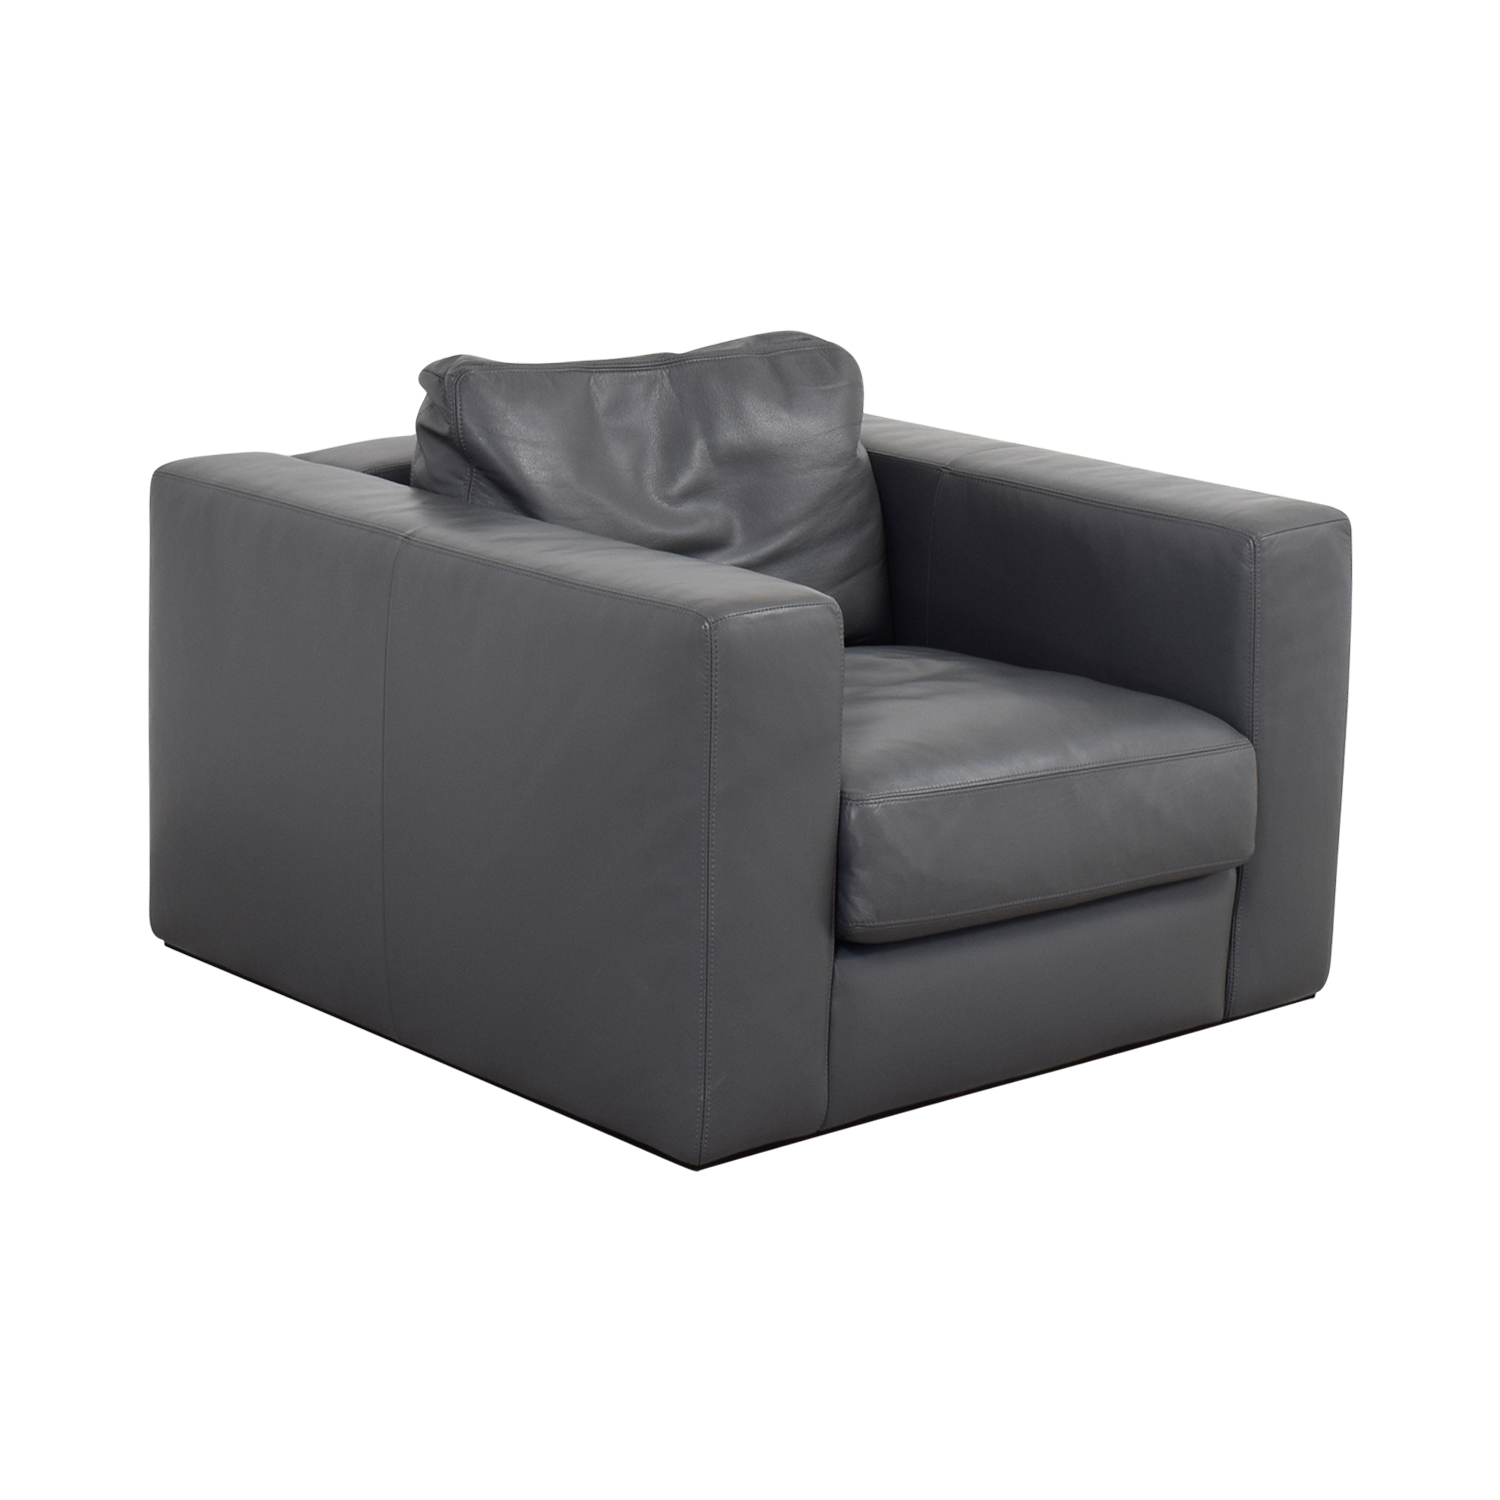 90 Off Design Within Reach Design Within Reach Grey Leather Sofa Chair Chairs